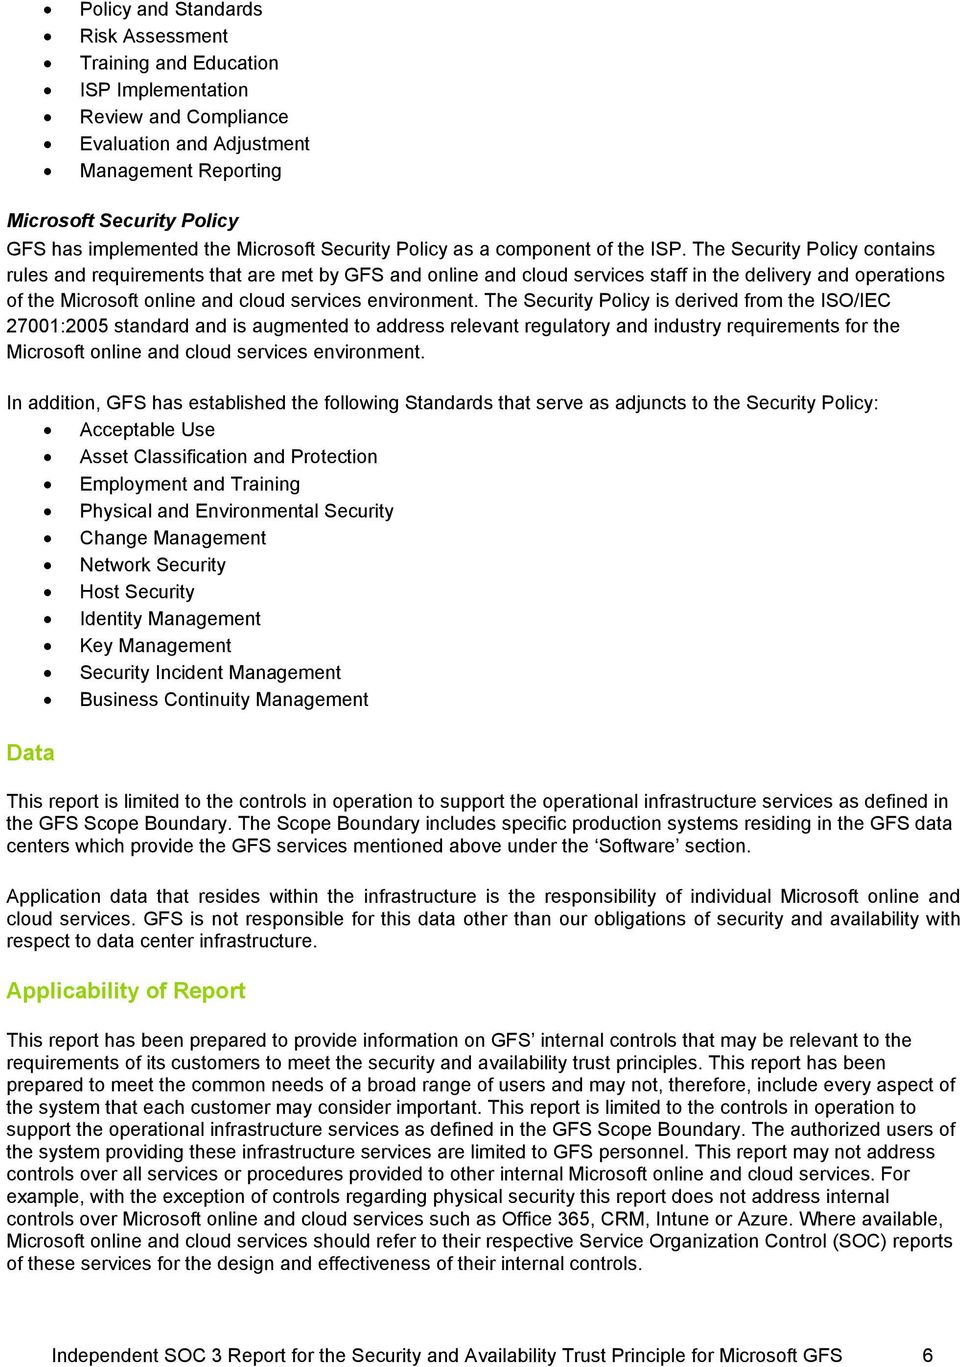 The Security Policy contains rules and requirements that are met by GFS and online and cloud services staff in the delivery and operations of the Microsoft online and cloud services environment.